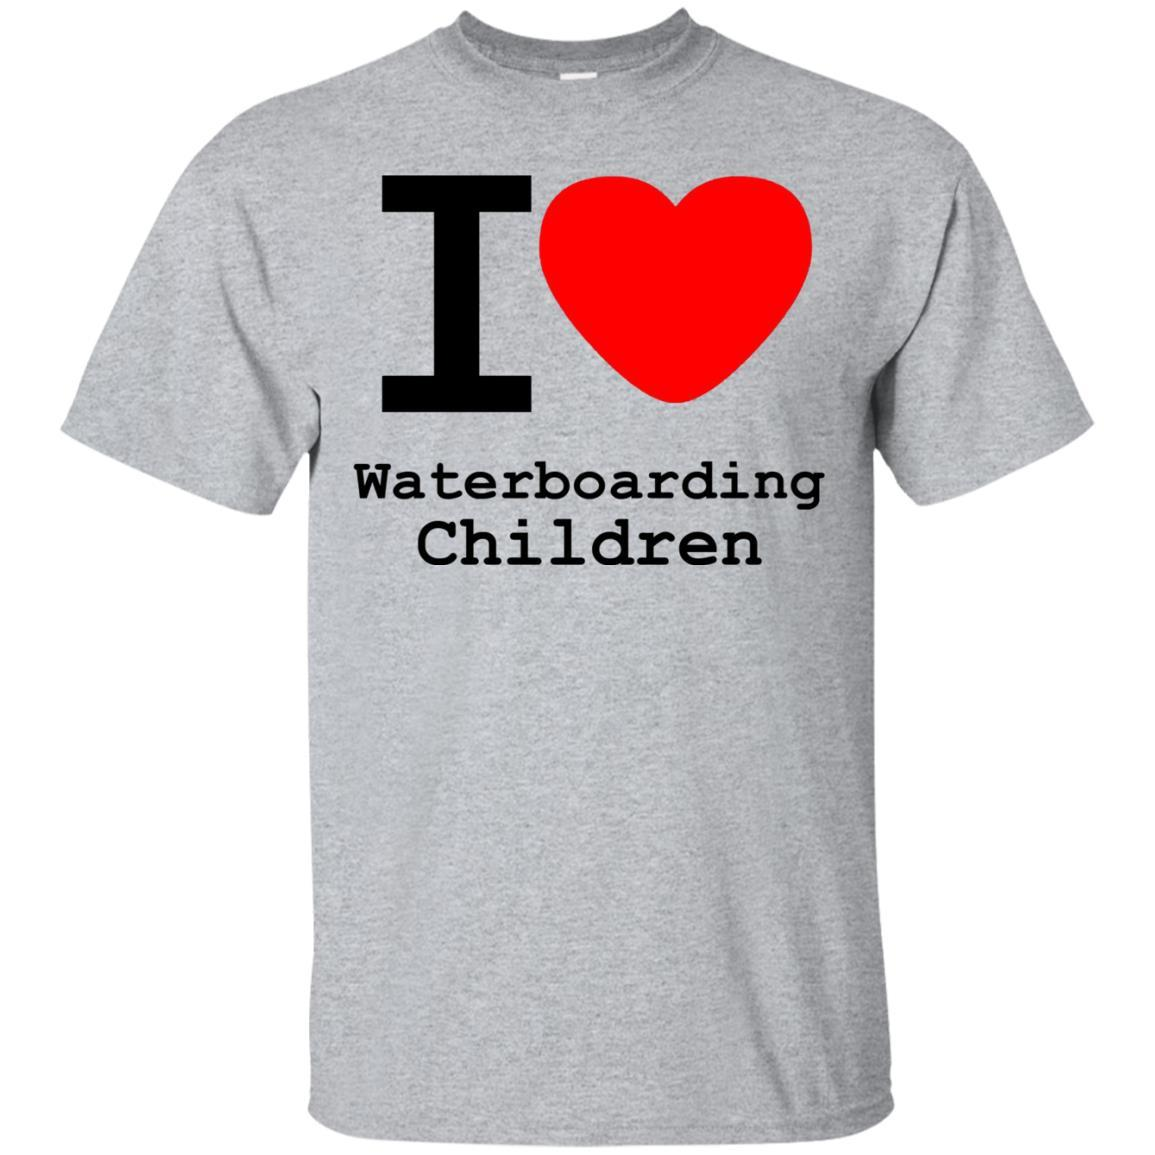 I love Waterboarding Children T Shirt